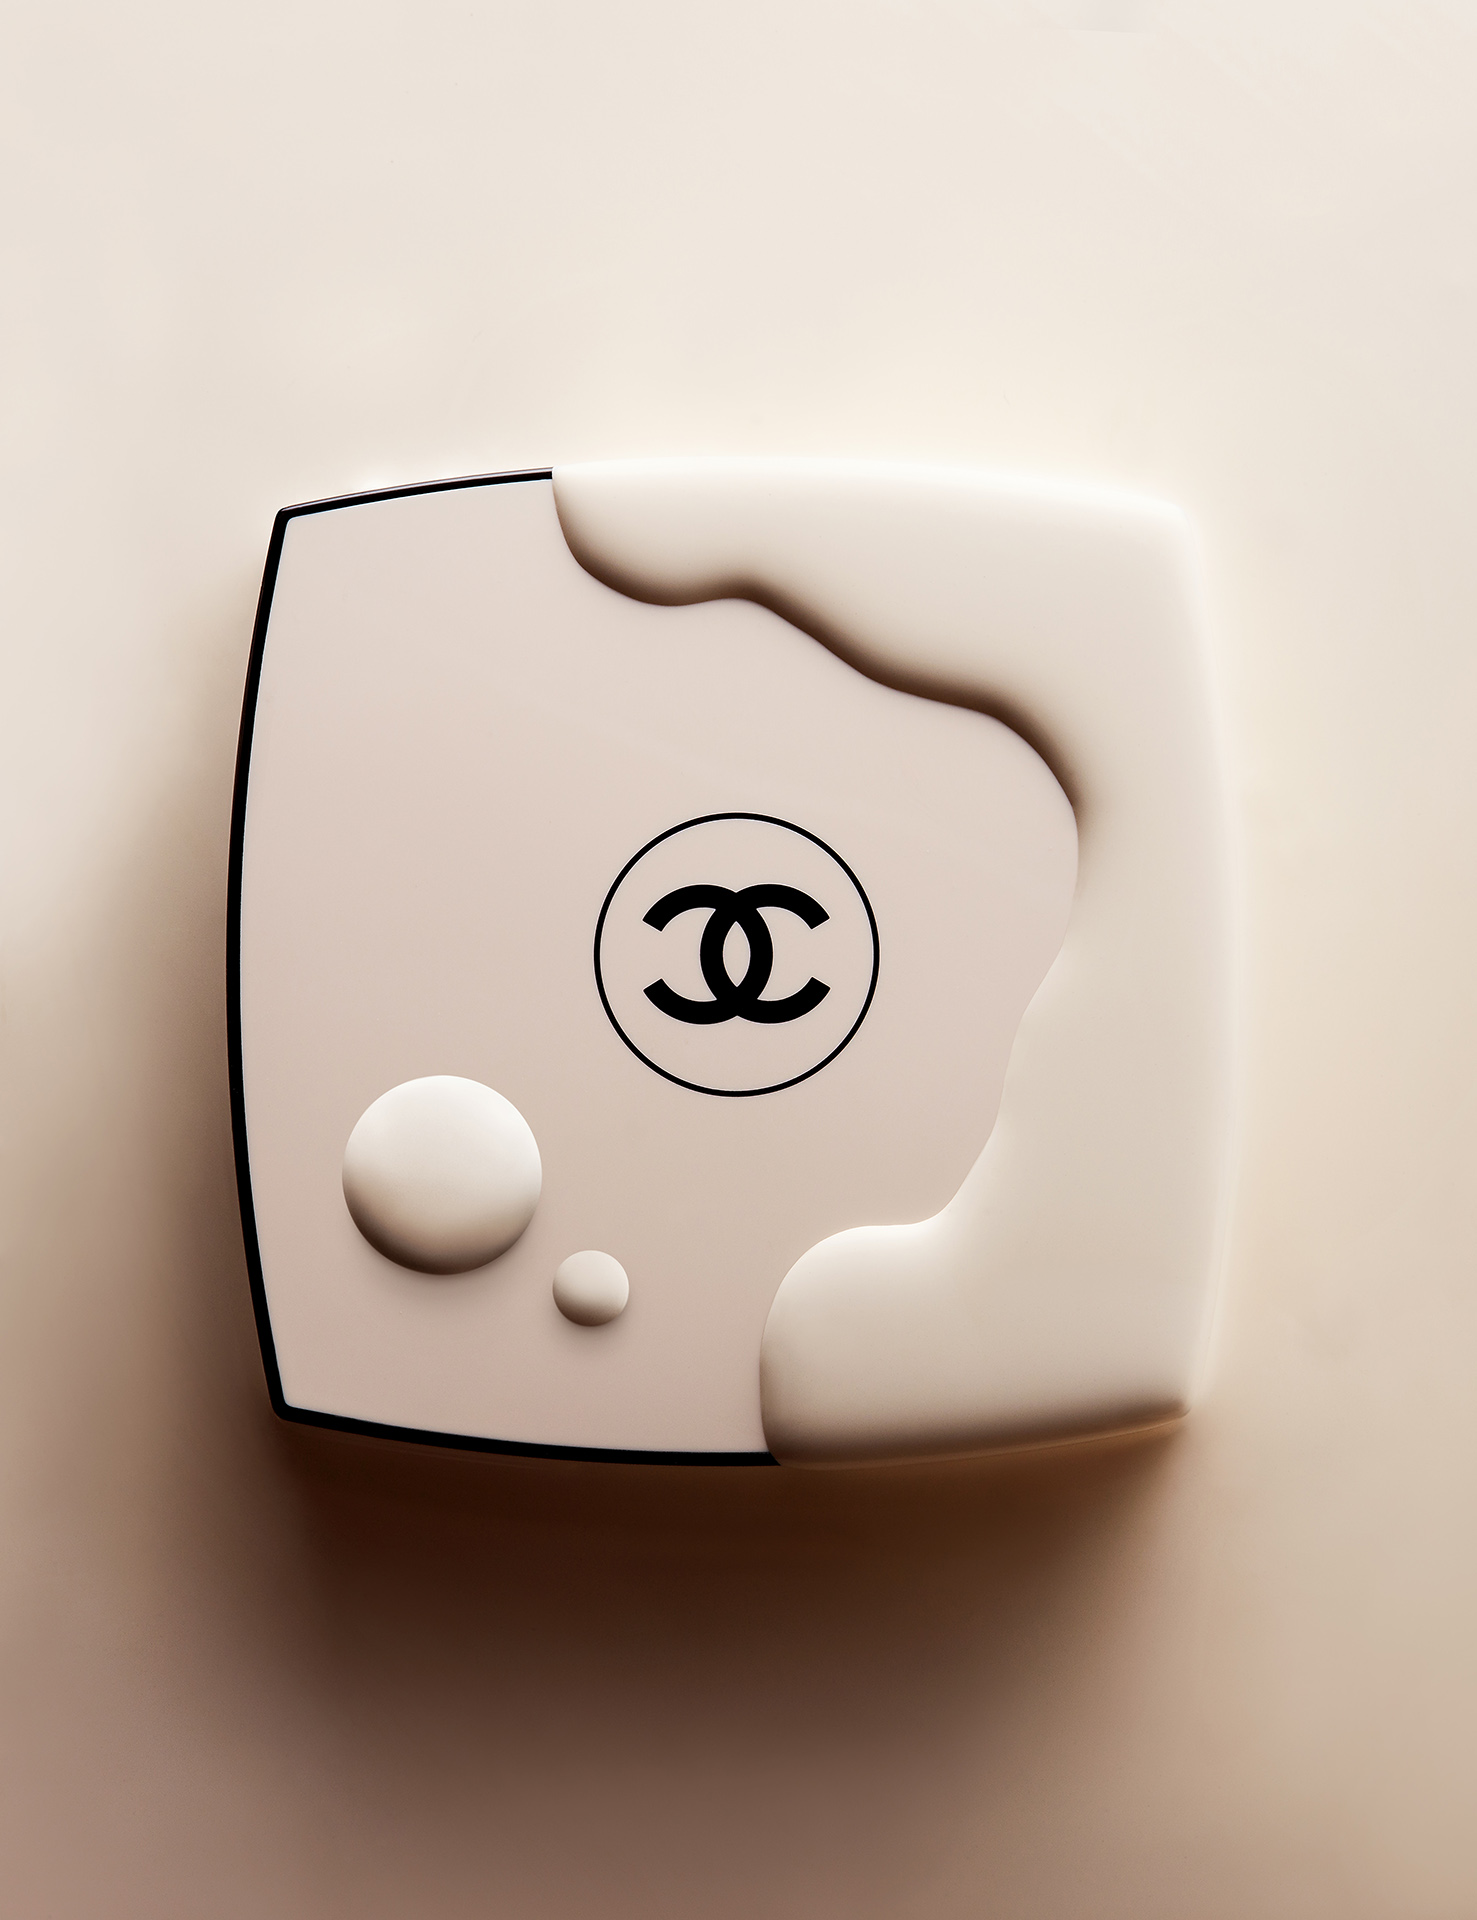 chanel make up compact cosmetics cream still life